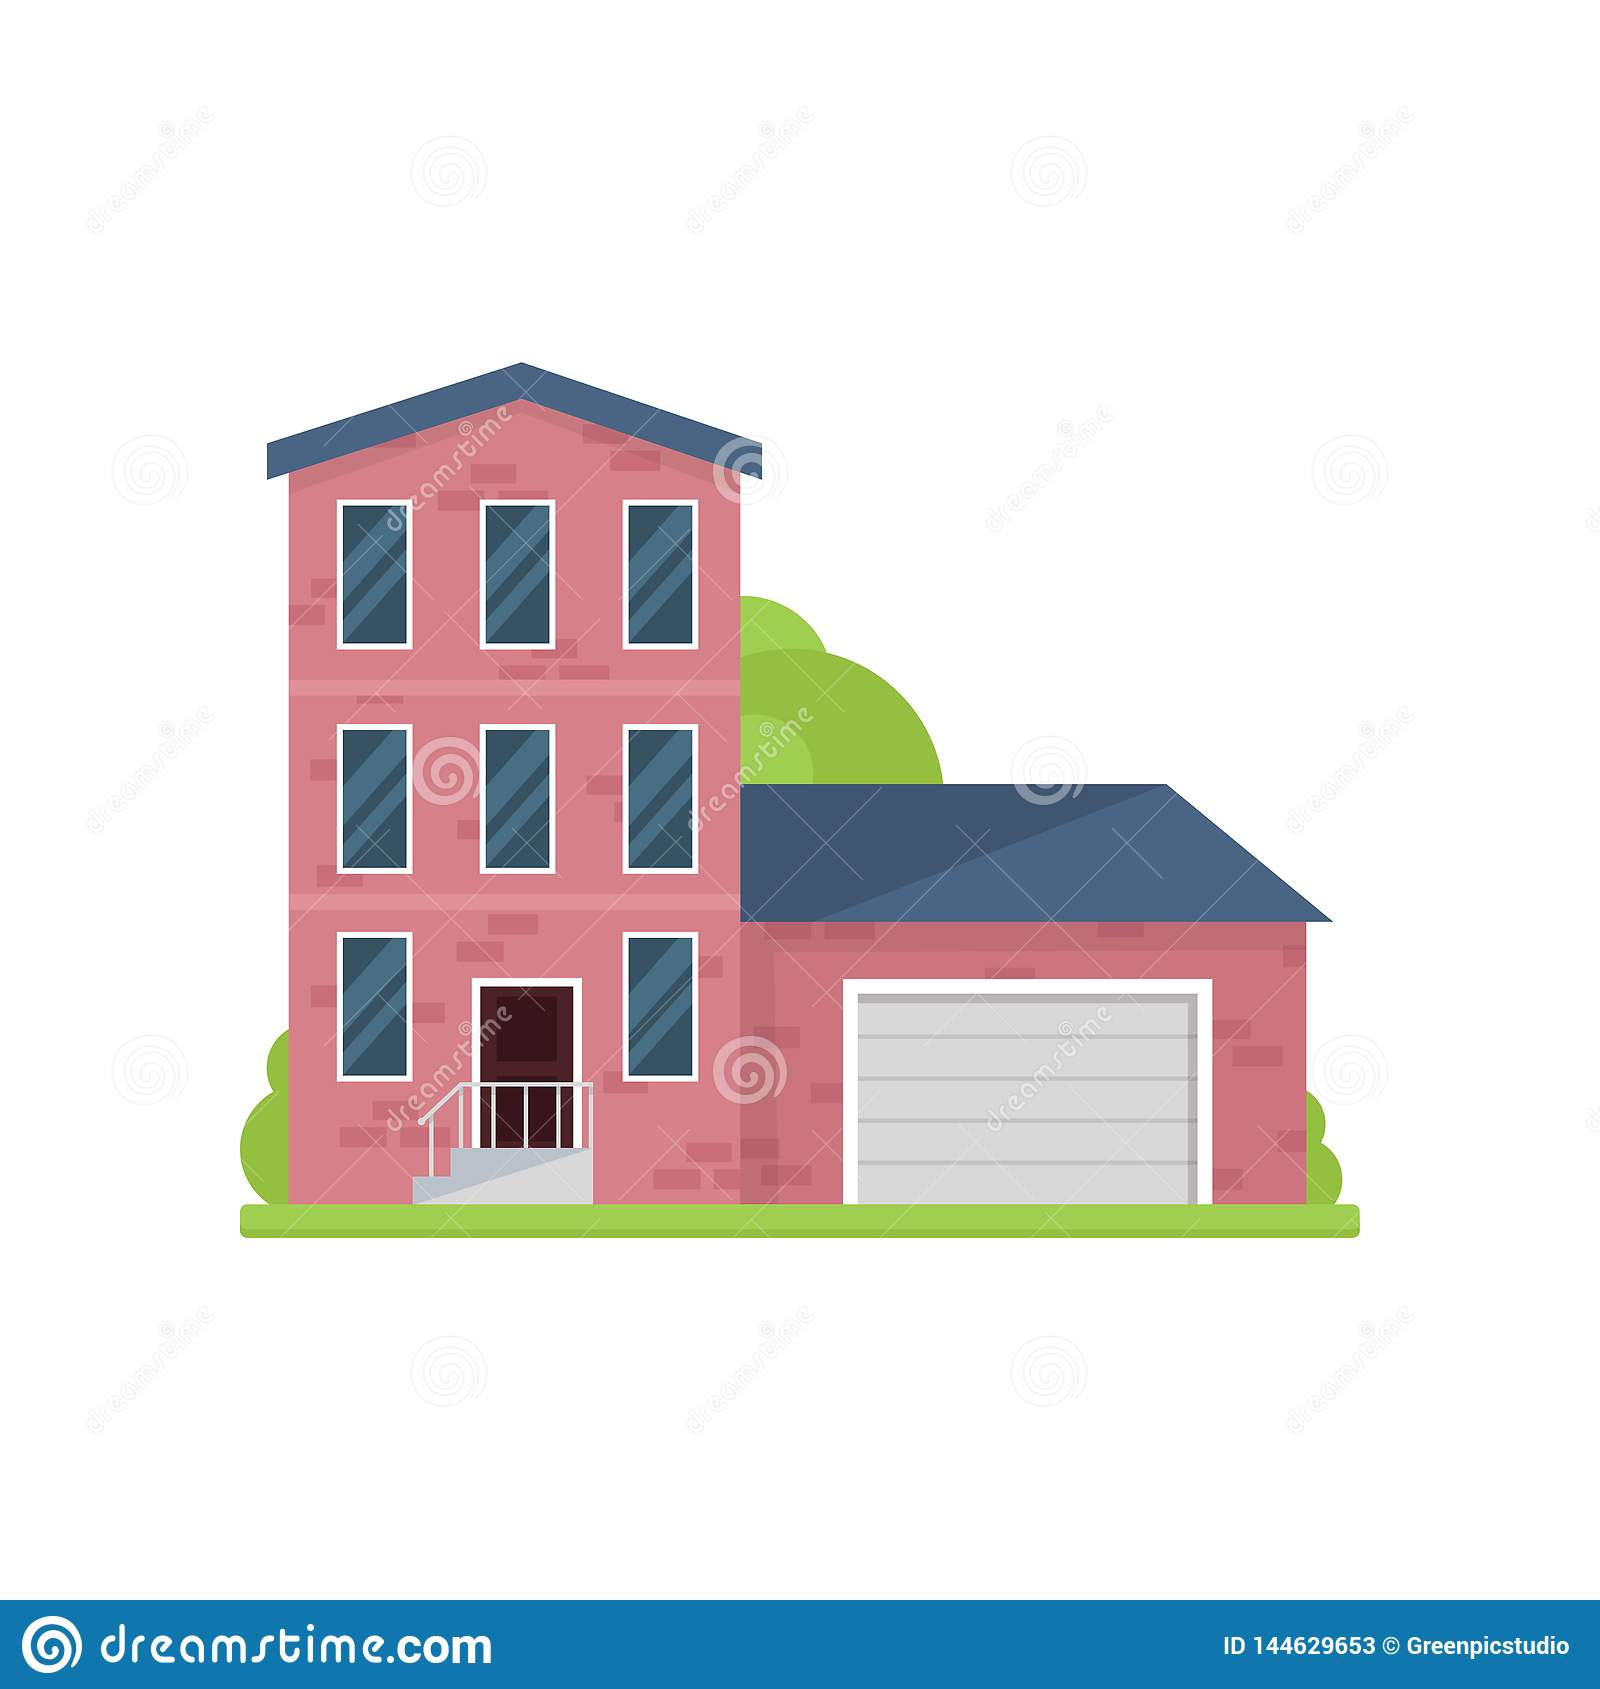 Cute red brick house with three floors and garage